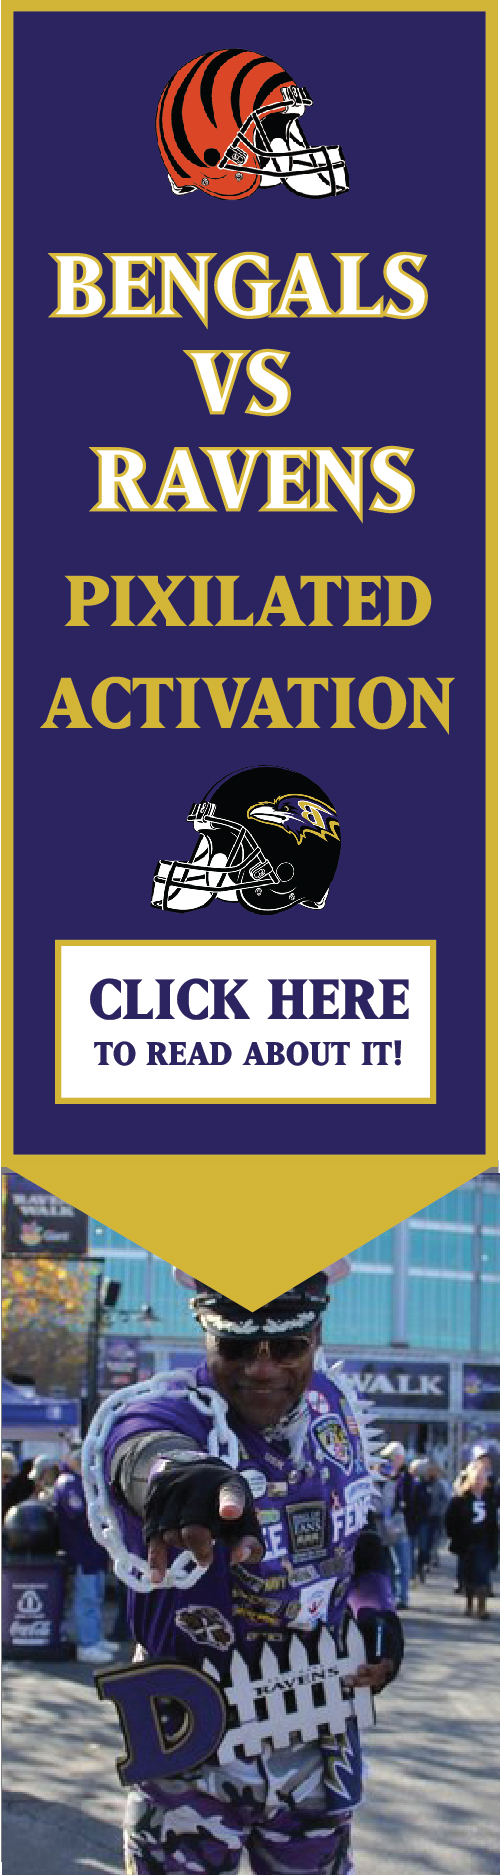 Bengals vs Ravens Sporting Event Activation